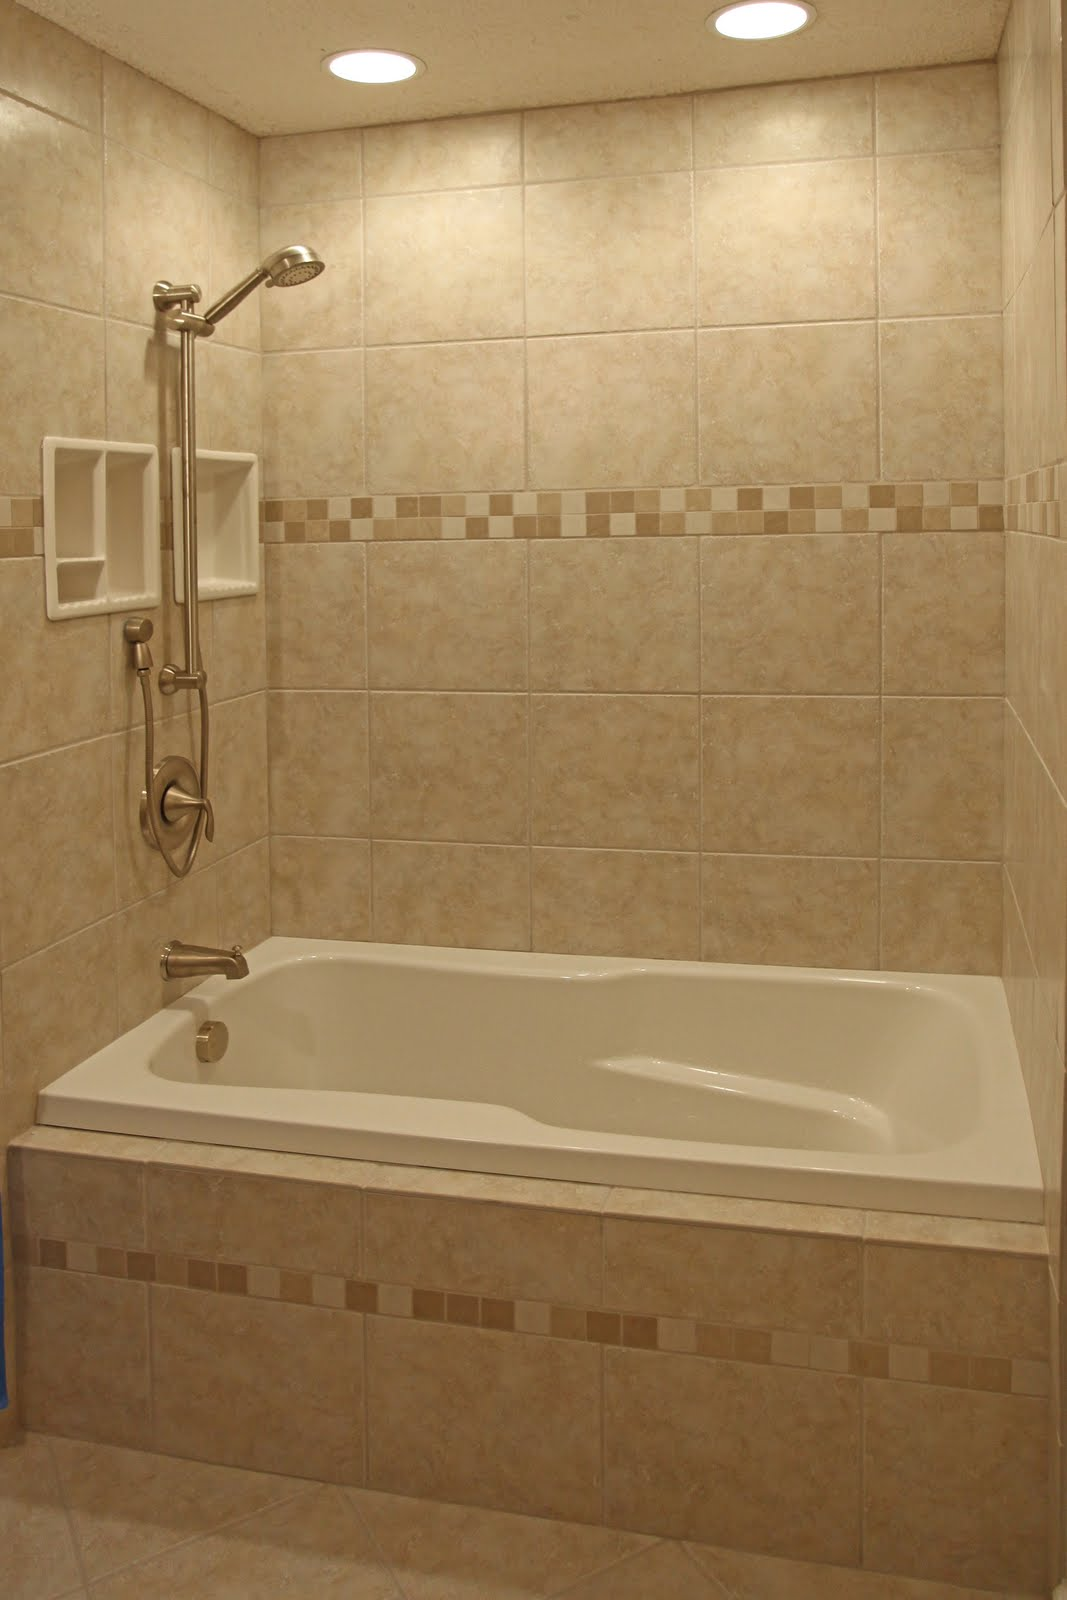 Garden And Home: Small bathroom tile design ideas